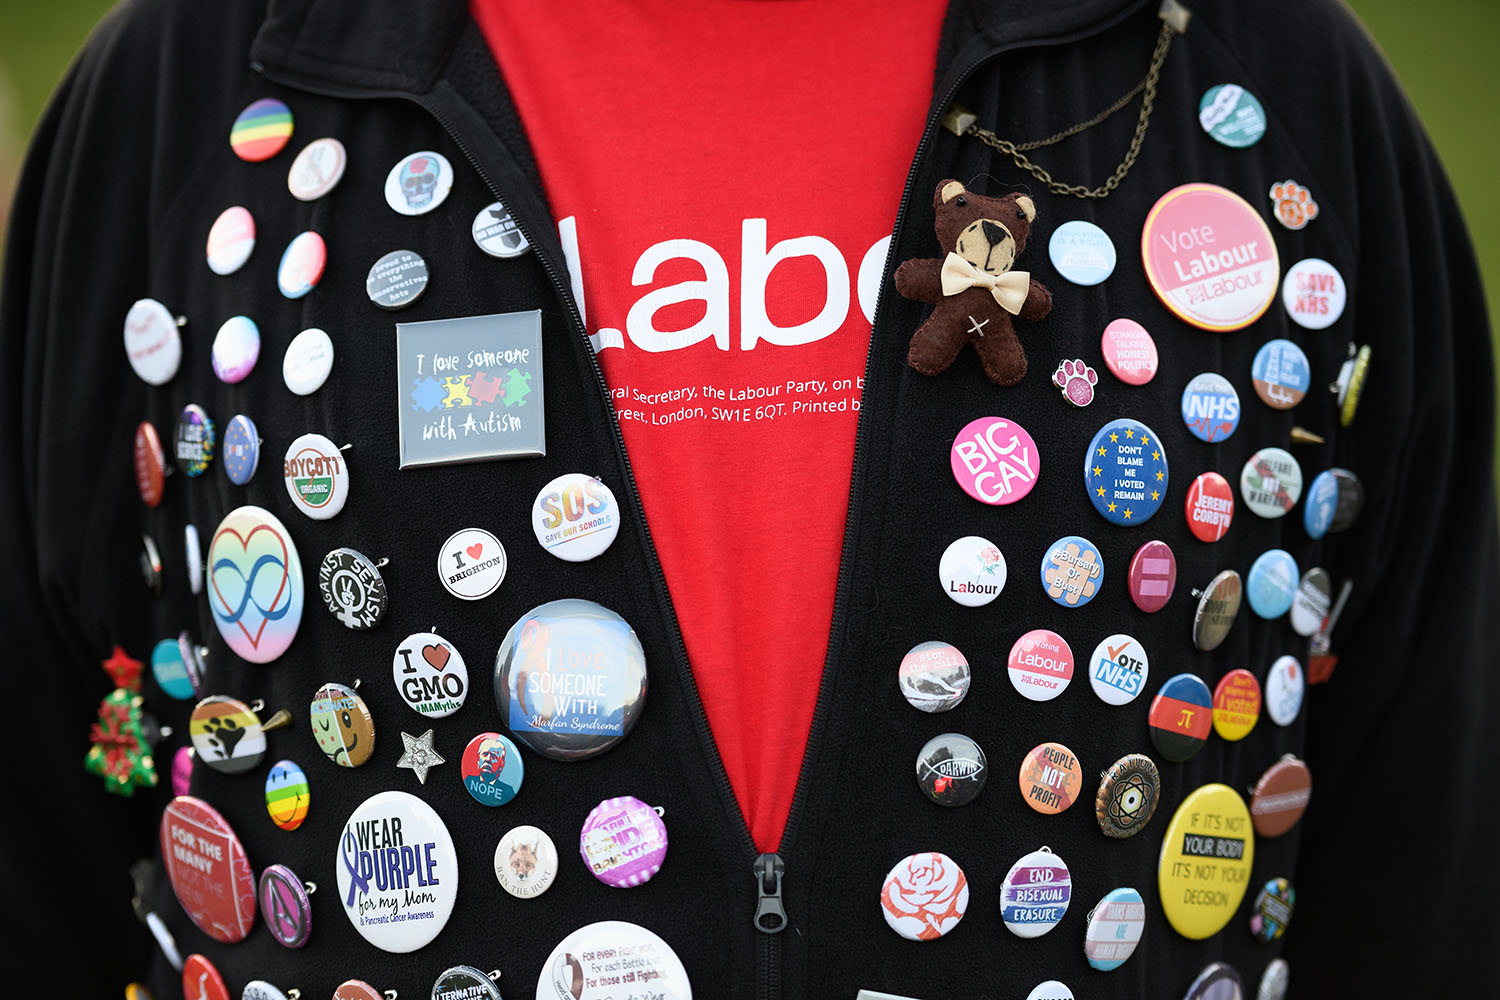 A Labour Party supporter shows off his collection of badges ahead of a speech by Labour Party leader Jeremy Corbyn at a Momentum rally in Brighton, England, on Sept. 23, 2017.